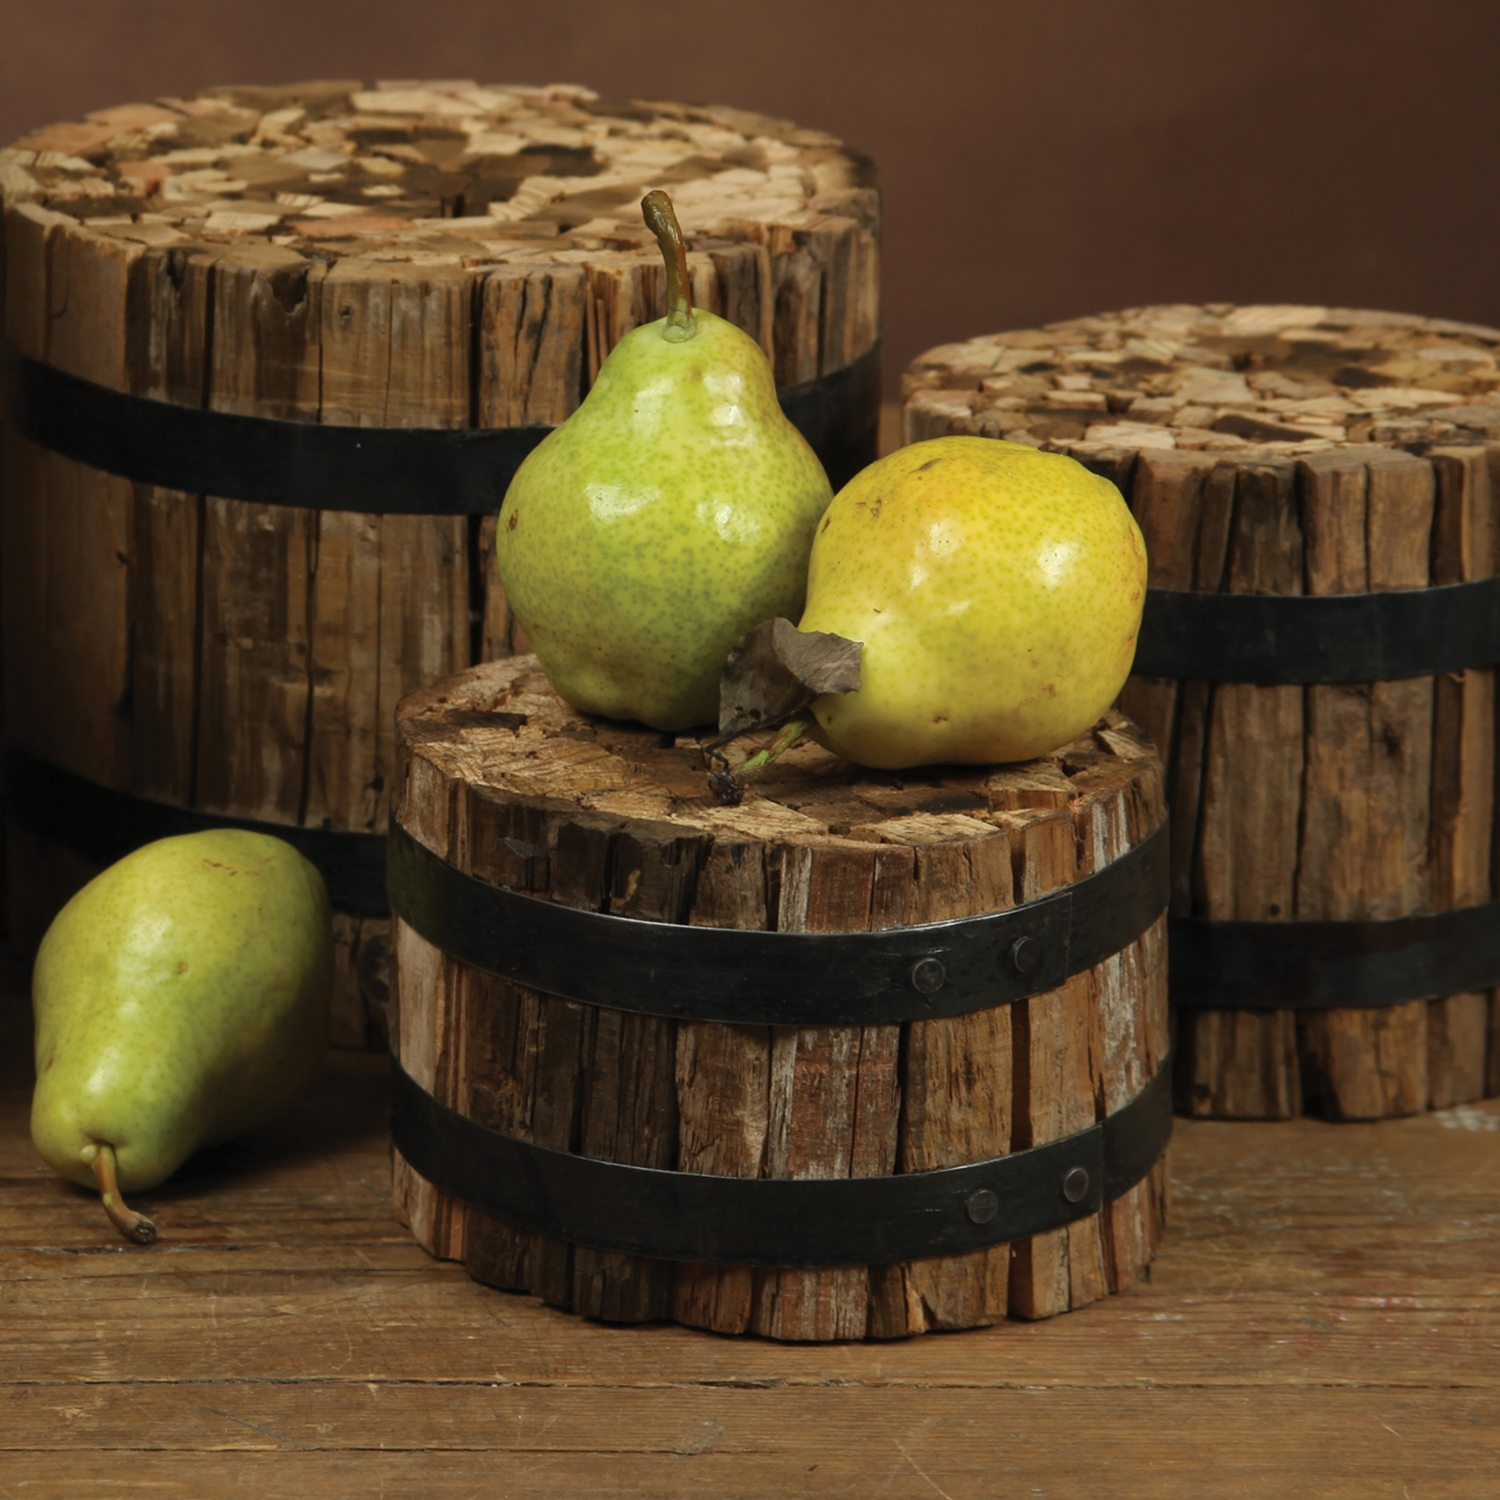 2725-0-Round Wood Bundle - 6x4  by Homeart